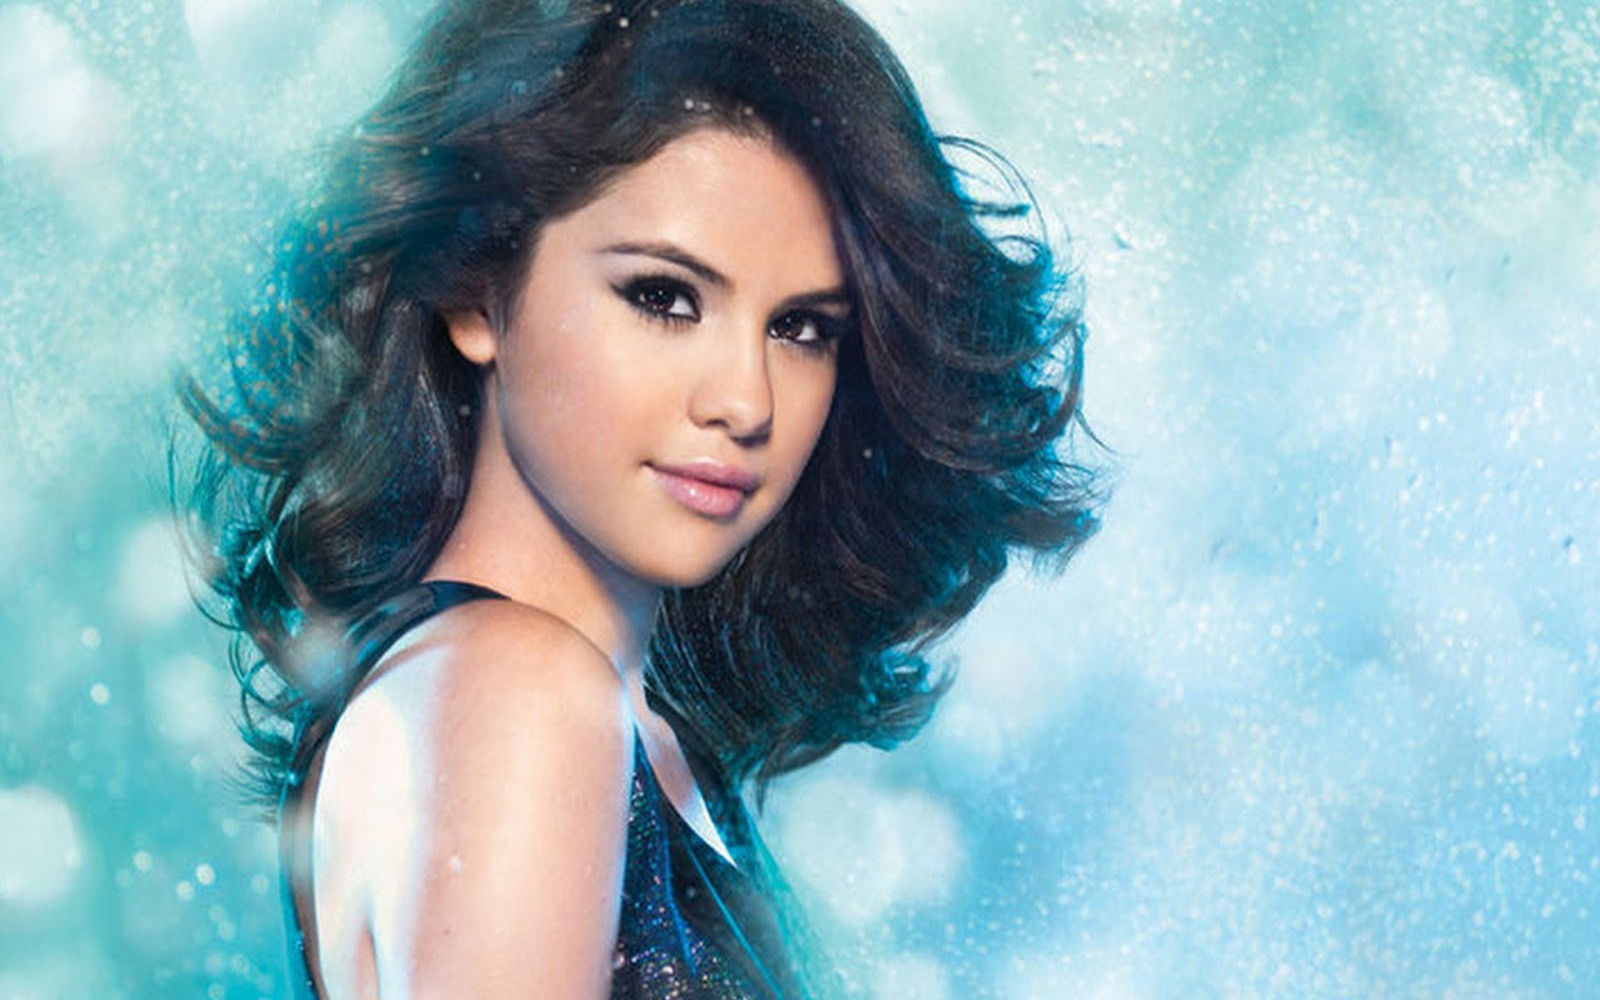 Selena gomez latest hot hd wallpapers for desktop and notebook voltagebd Choice Image